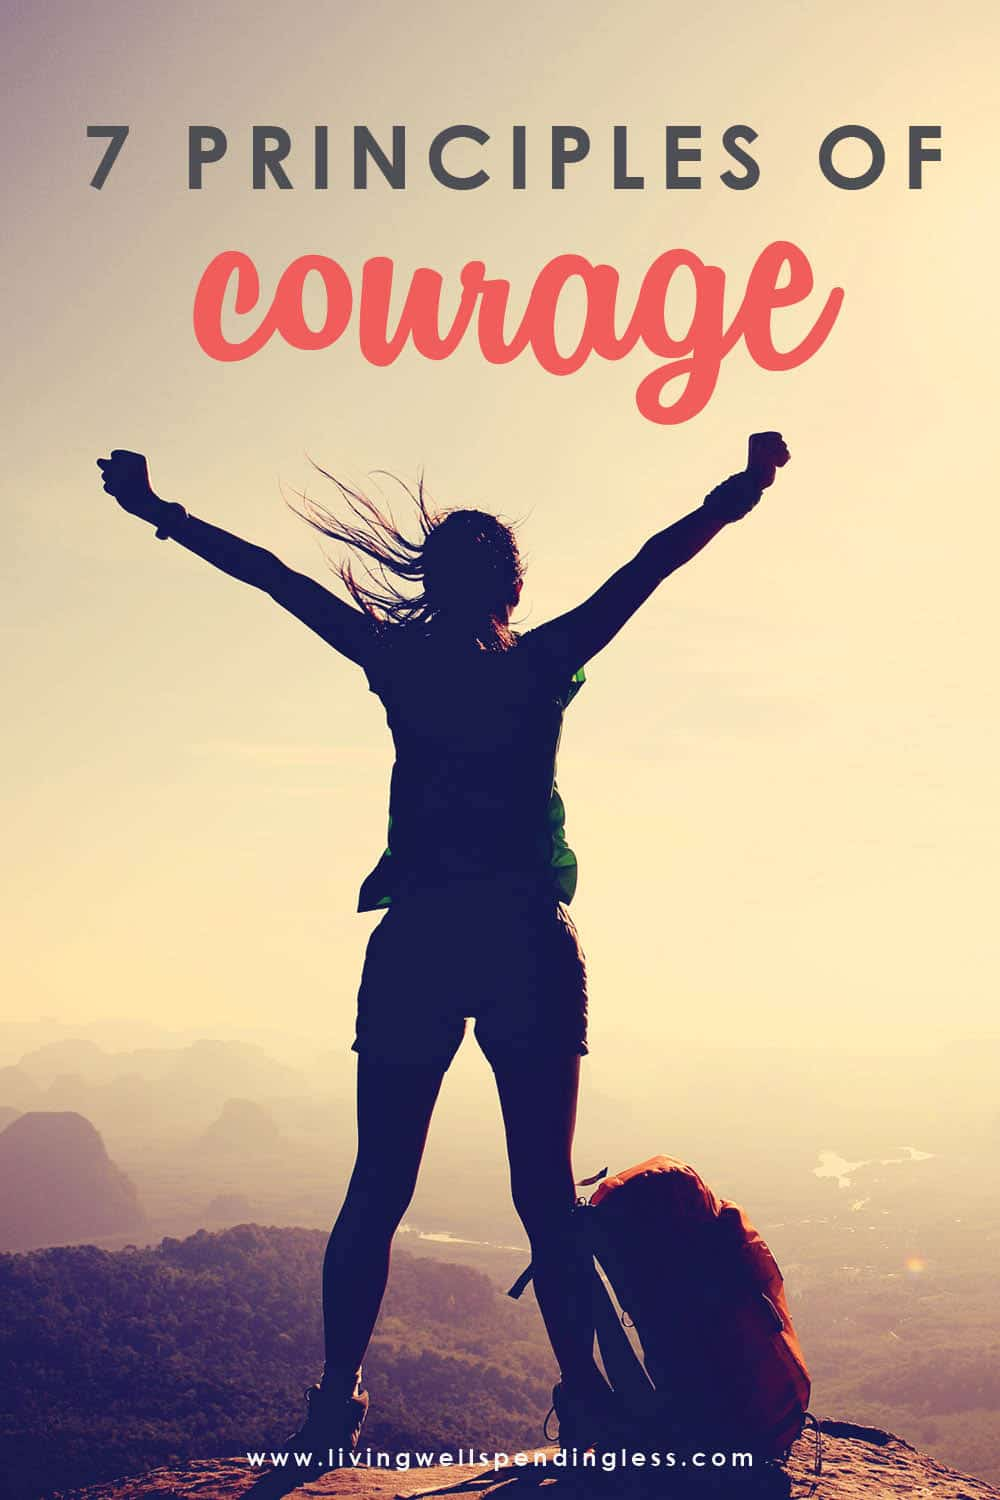 Did you know that most fear happens subconsciously, without us even realizing it? We're so used to hearing that little voice in our heads telling us we're not capable or qualified, but guess what? That voice is lying! Thankfully, there's something you can do about it and it starts with knowing the Seven Principles of Courage. #doitscared #doitscaredmovement #overcomefear #inspiration #motivation #courage